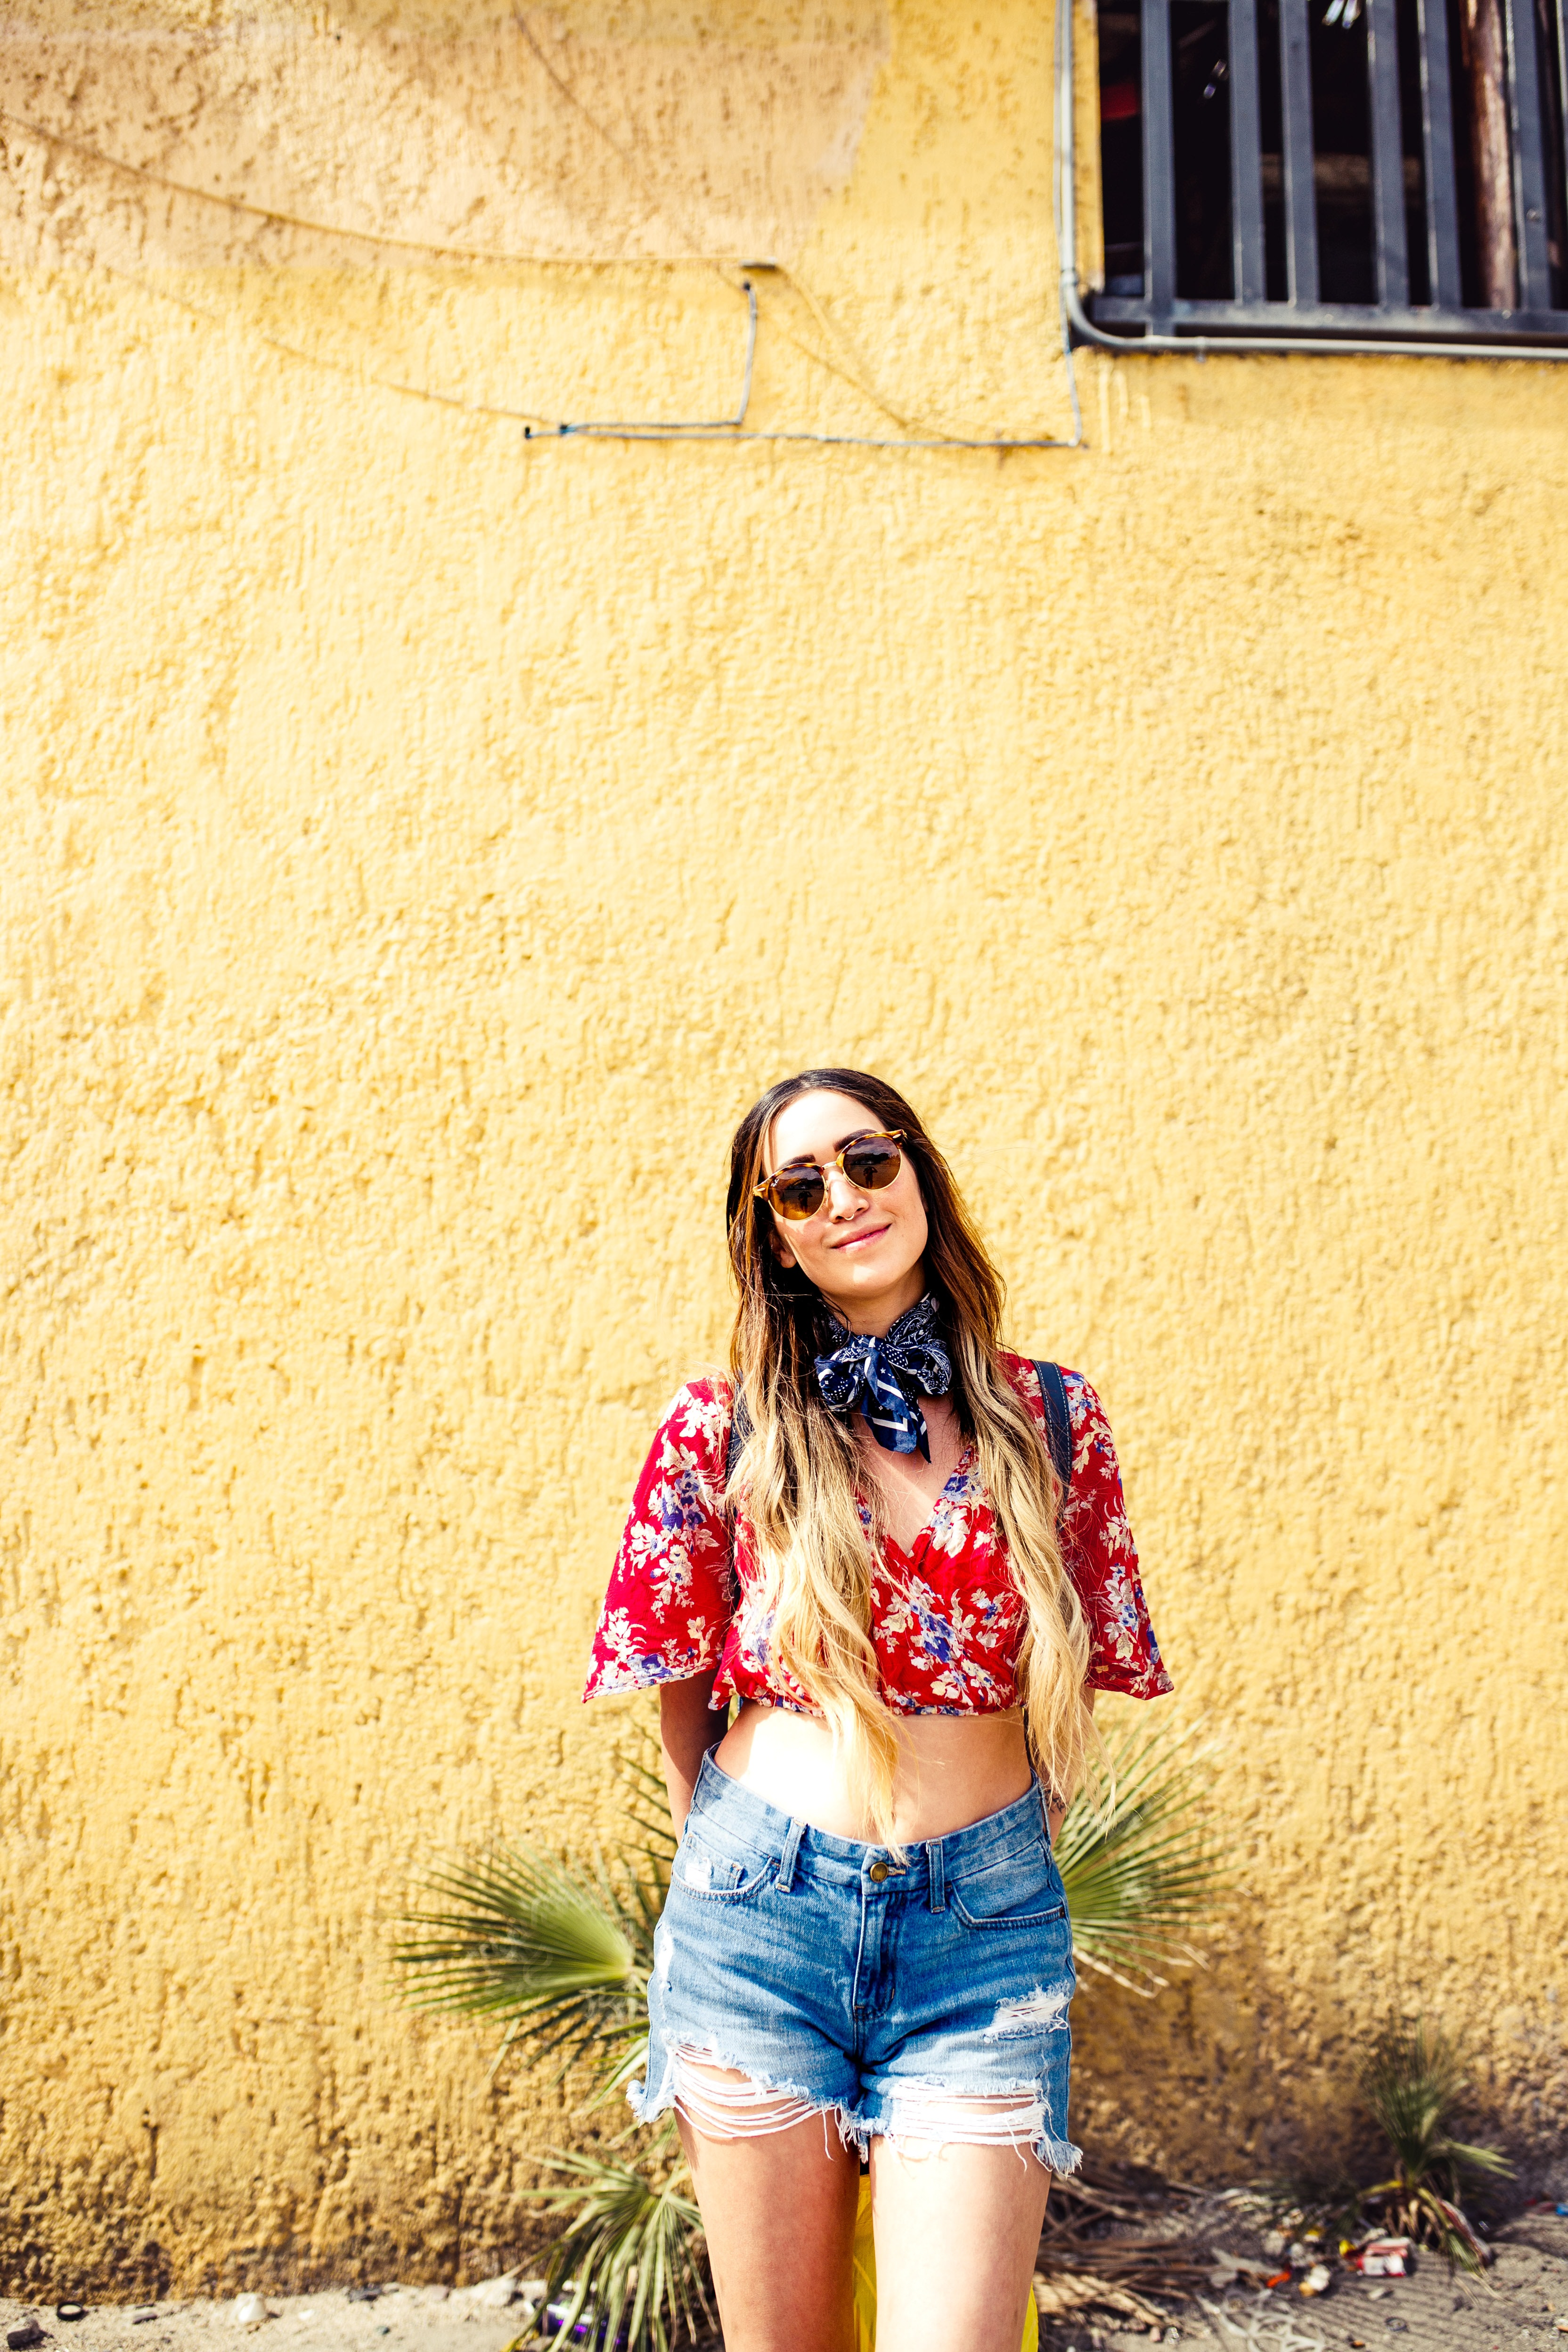 woman in red floral crop-top and blue denim shorts standing in front of brown concrete house during daytime